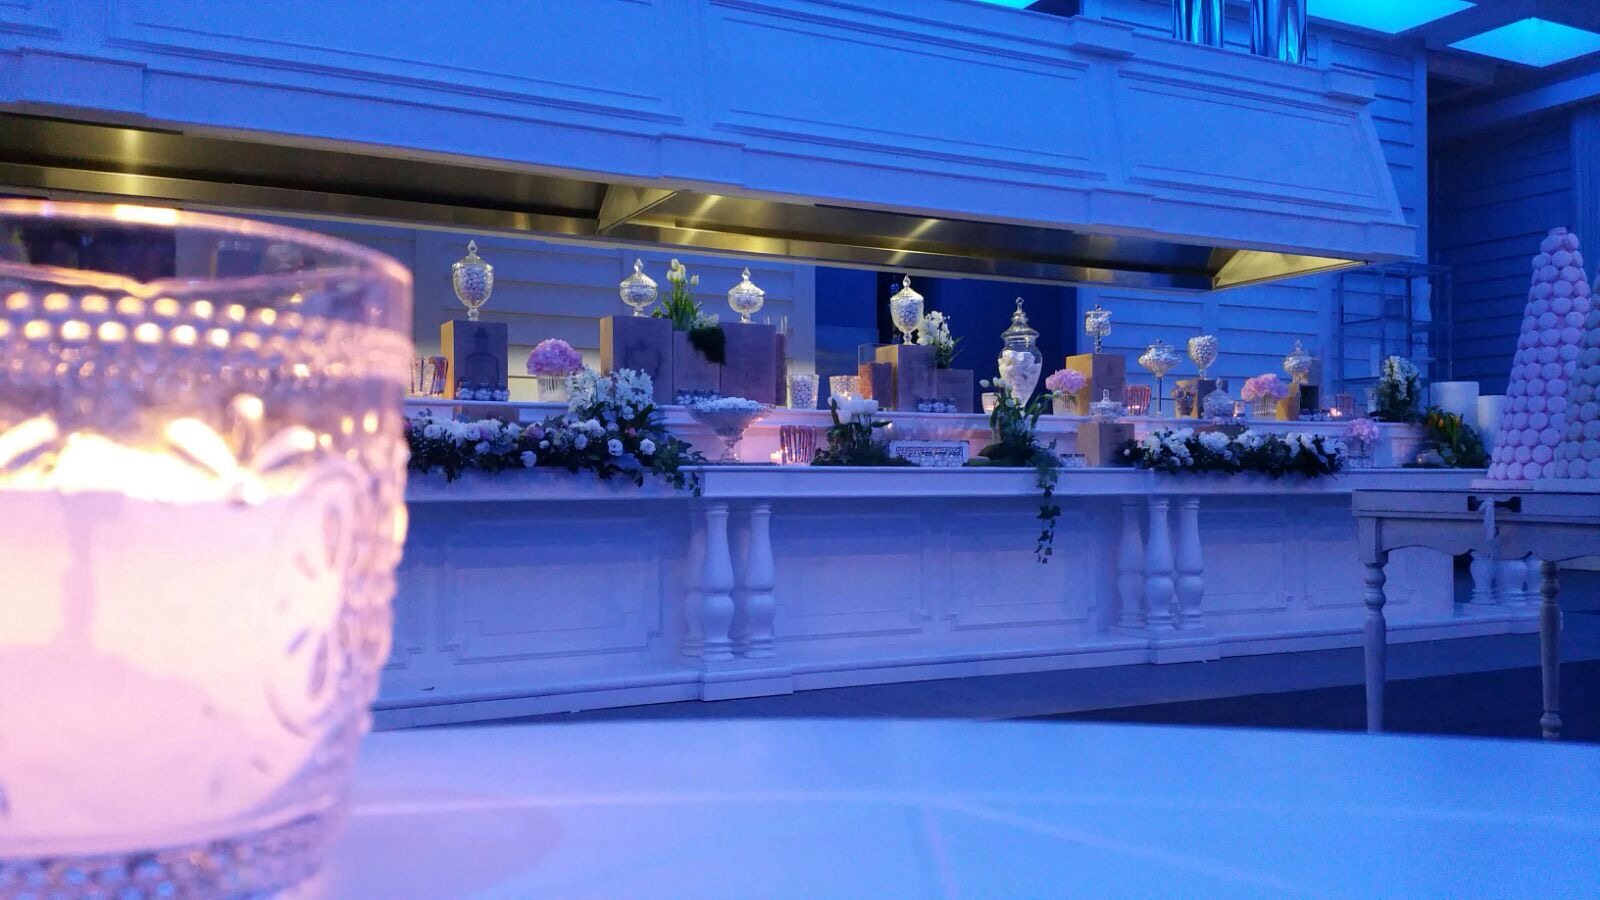 http://www.weddingamalfi.com/wp-content/uploads/Domenico-and-Maria-wedding-sweets-and-dragees.jpg